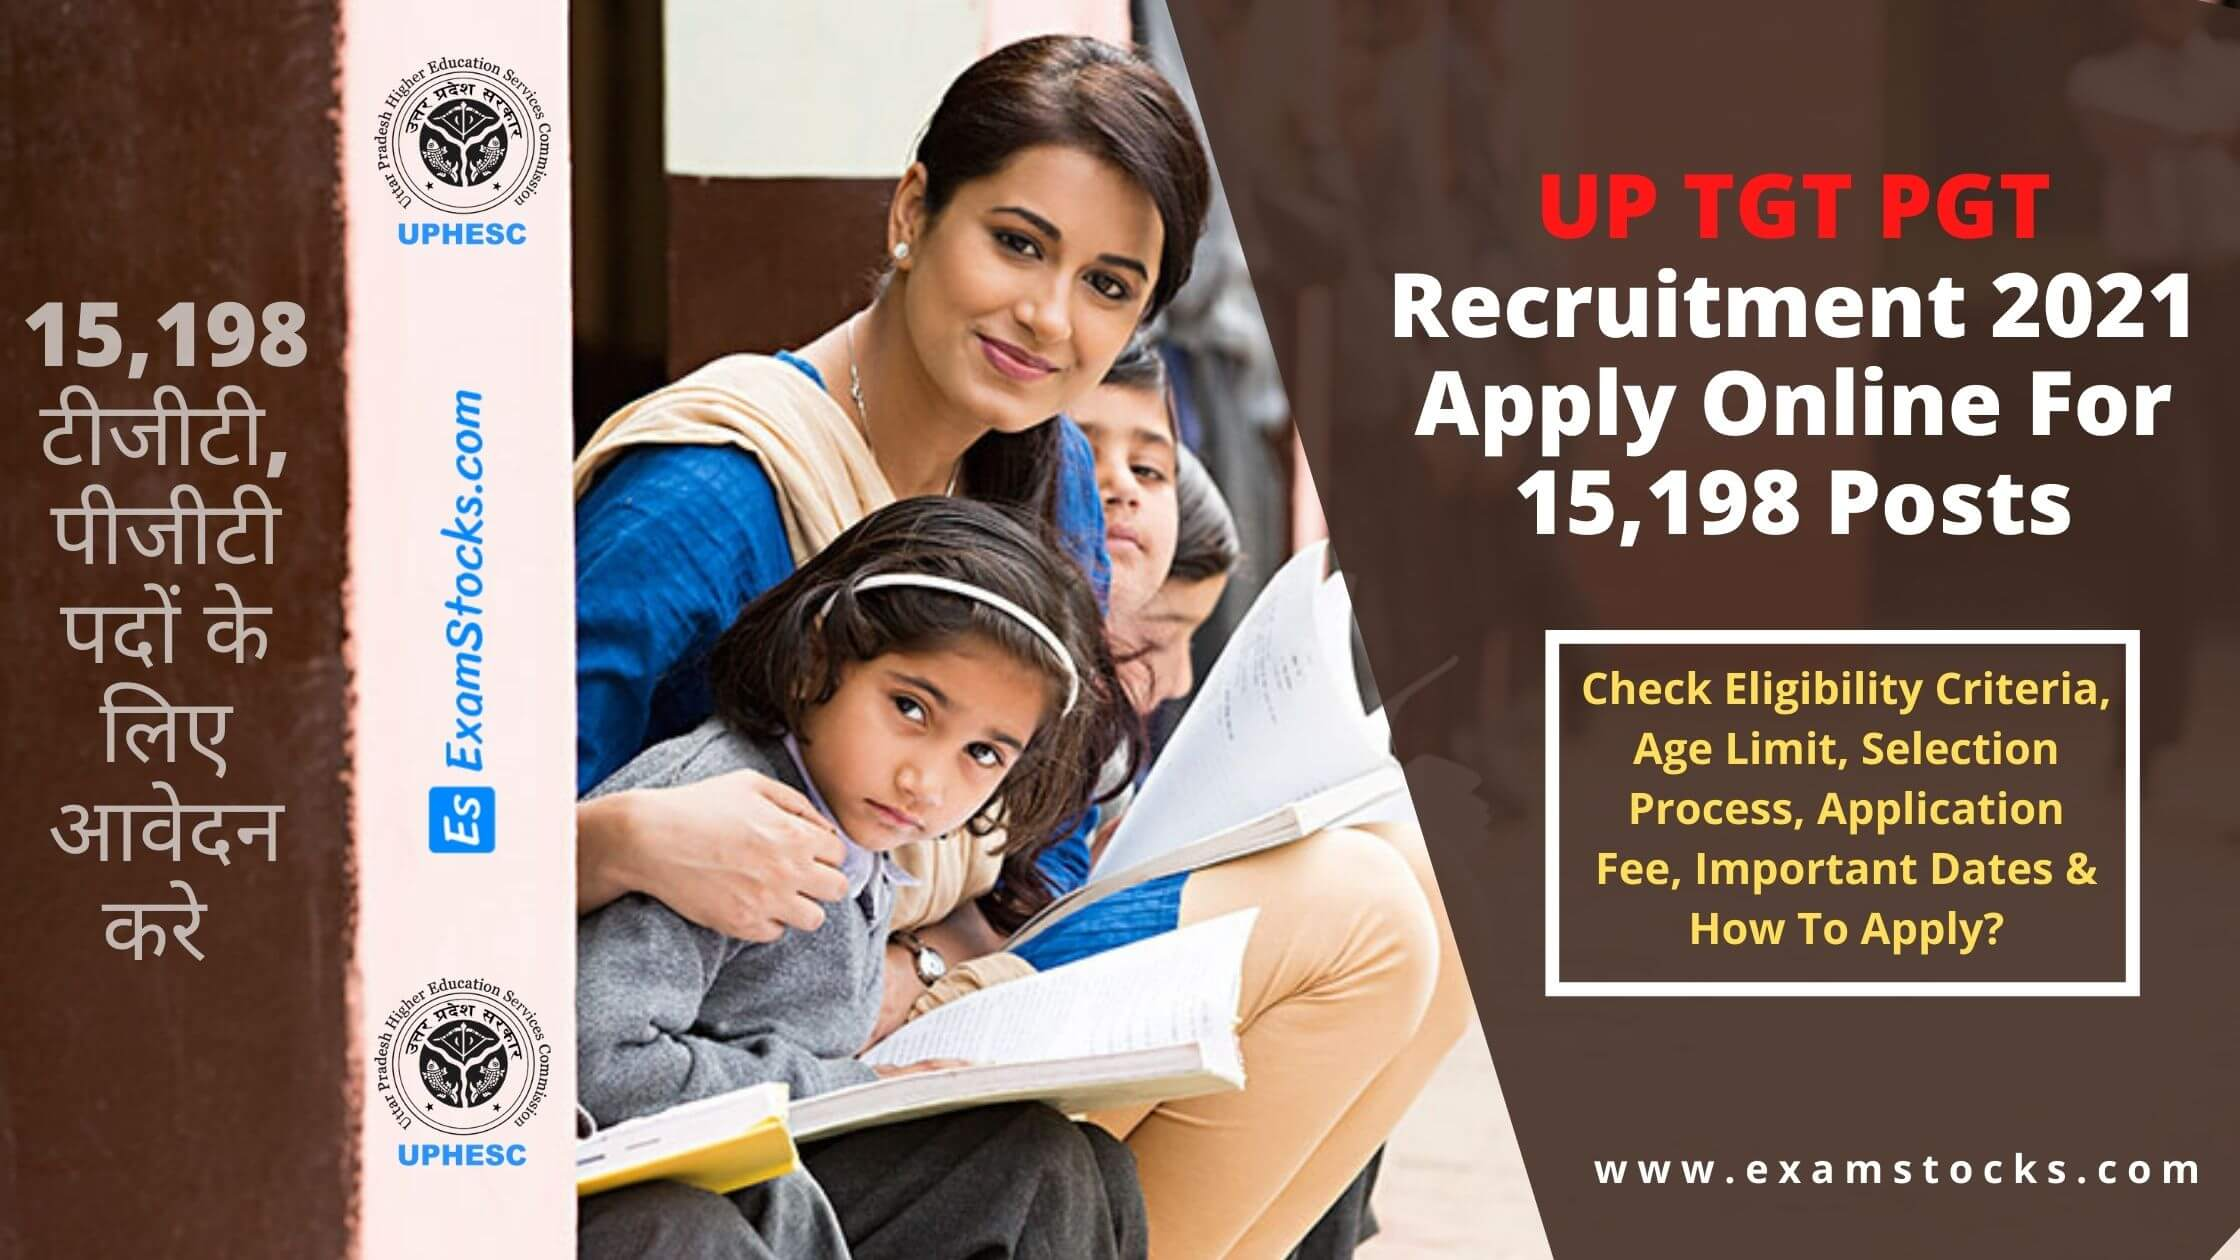 UP TGT PGT Recruitment 2021 Apply Online For 15198 Posts